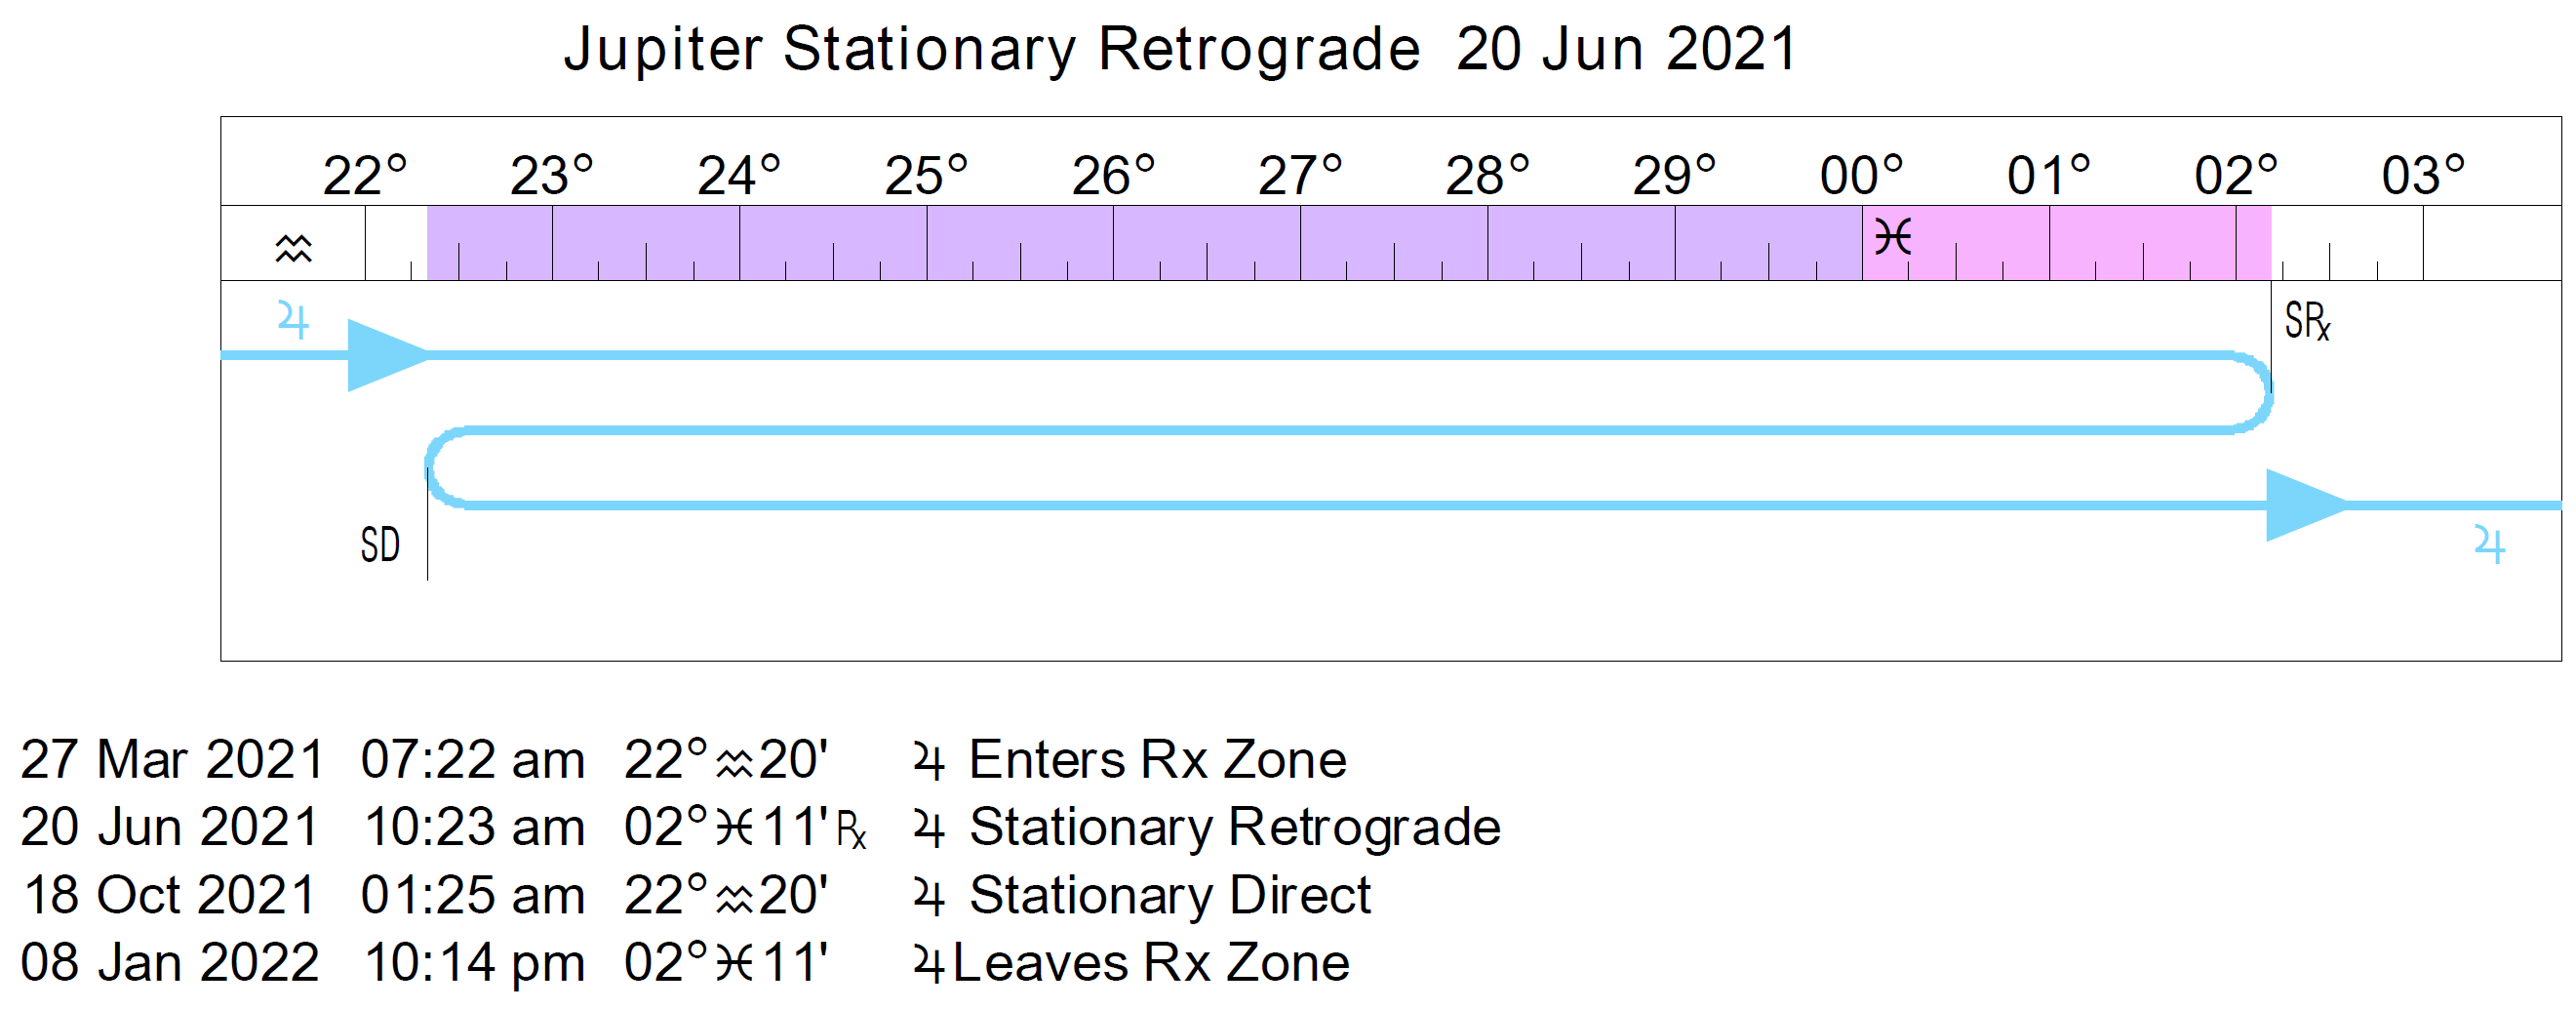 Retrograde CyclesStations